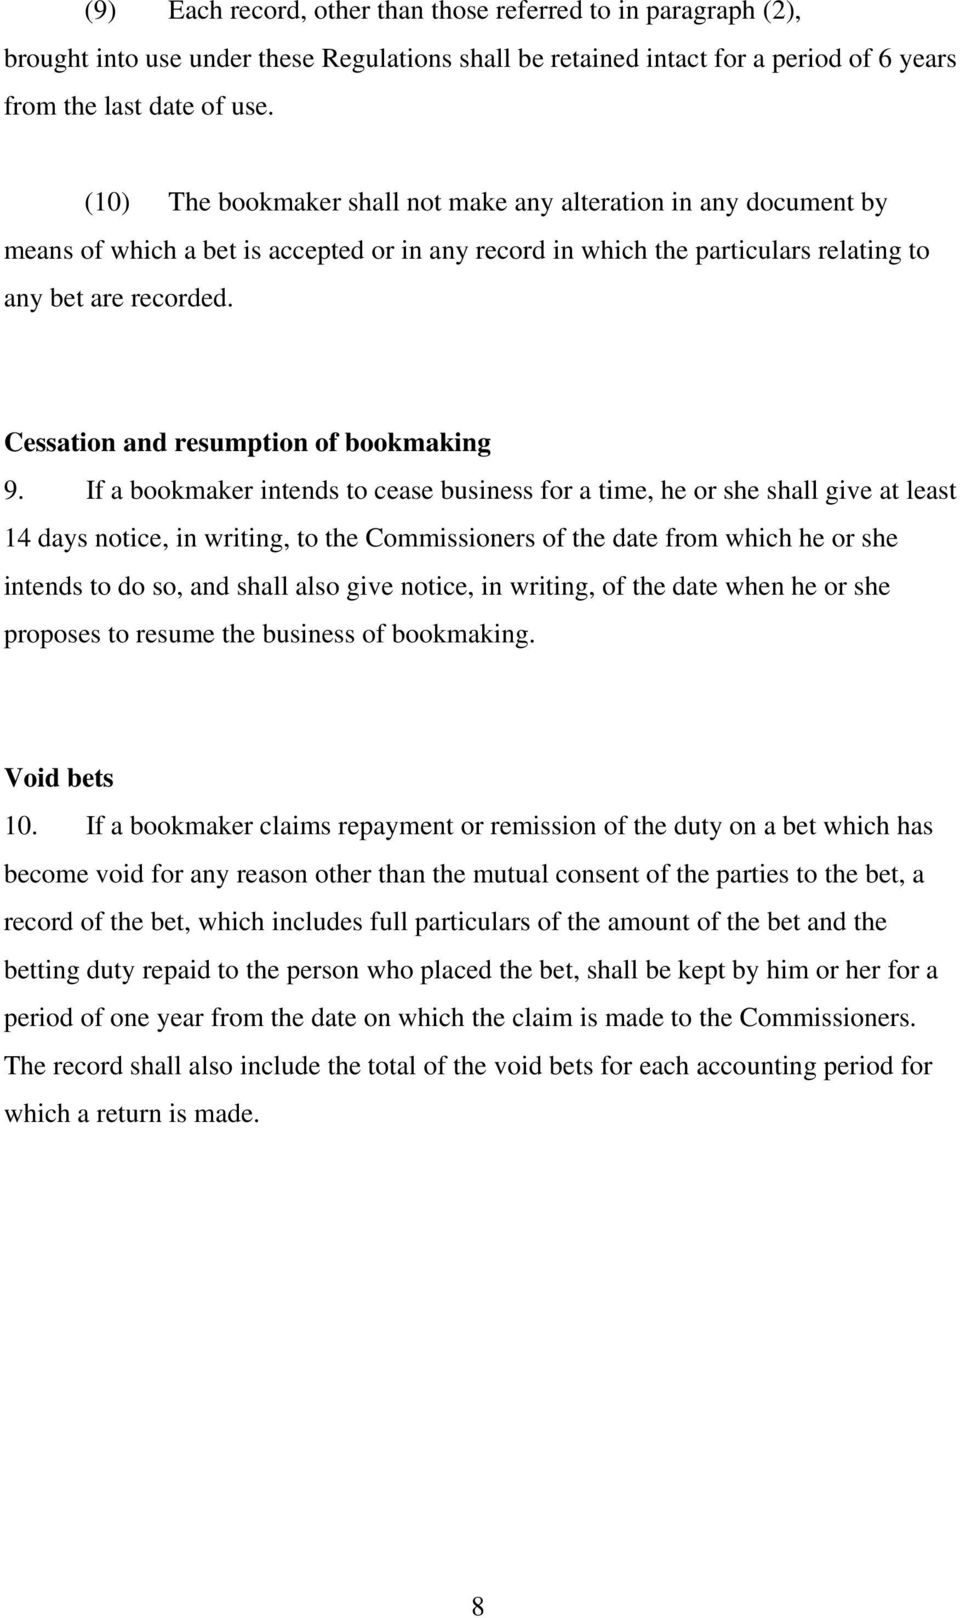 Cessation and resumption of bookmaking 9.